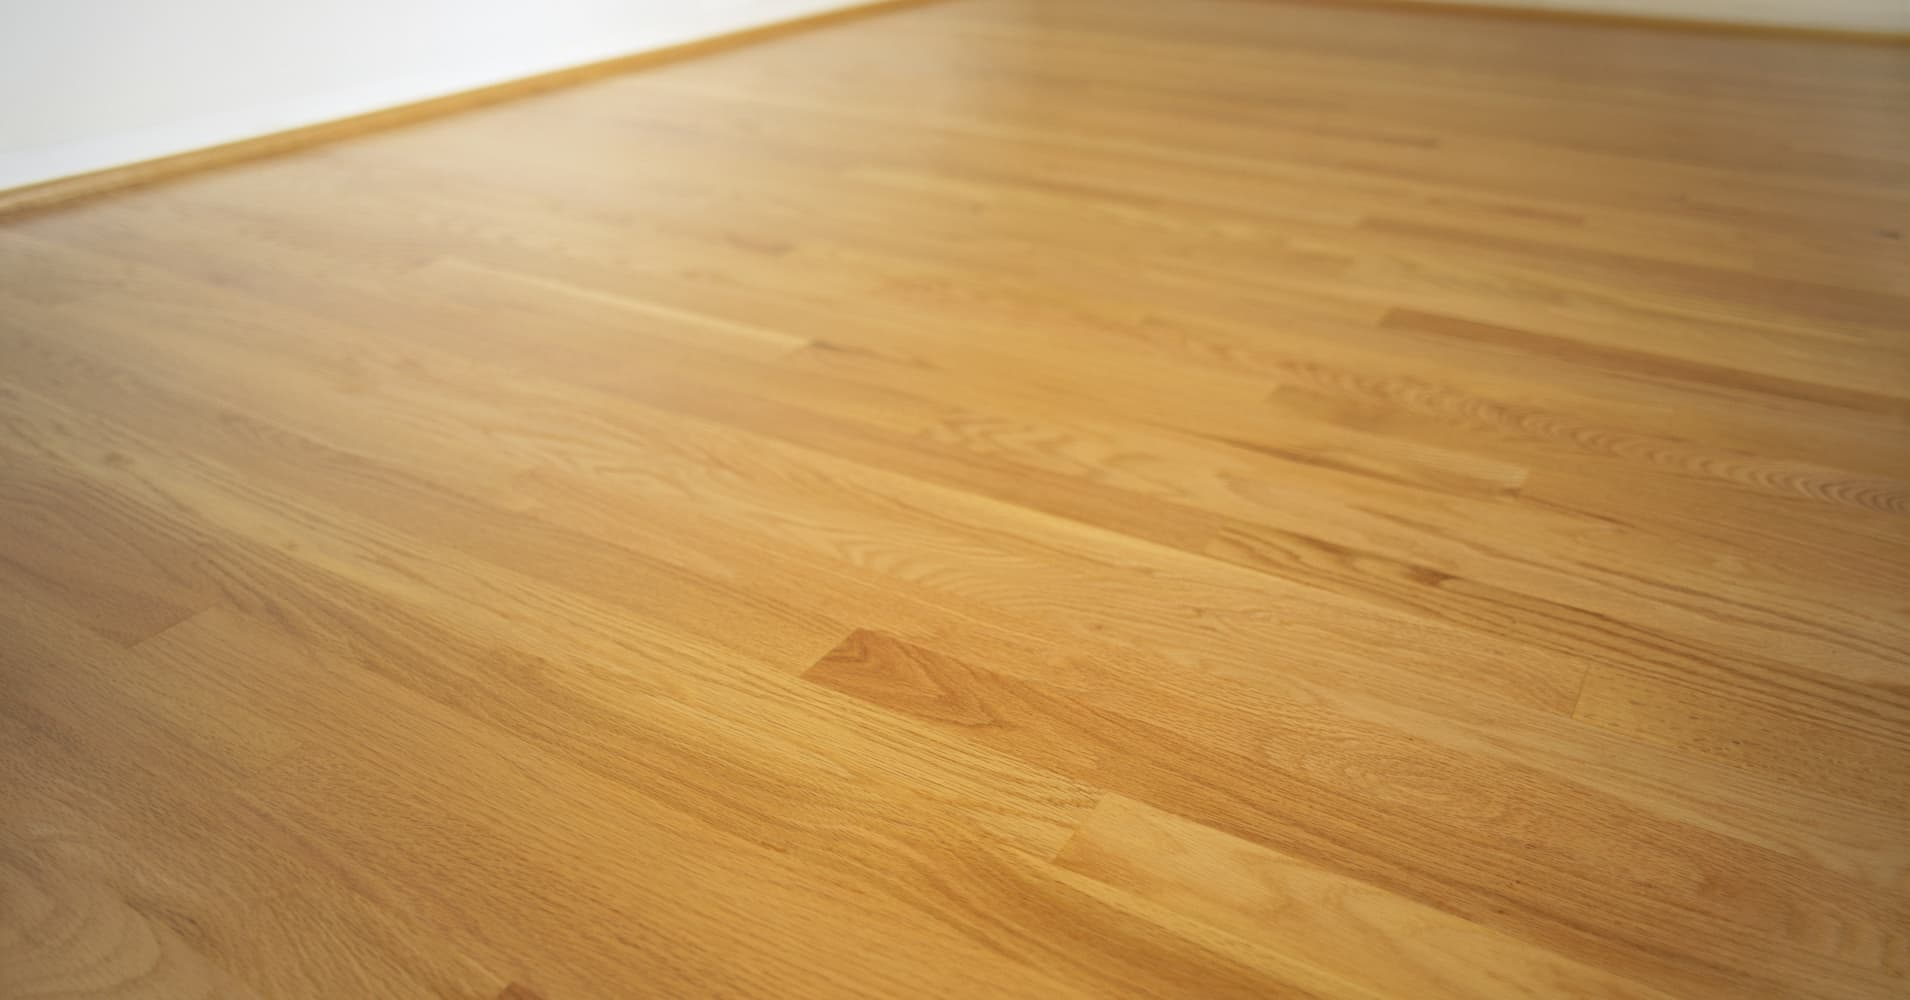 Lumber liquidators flooring fails safety tests 39 60 minutes 39 for Hardwood floors 60 minutes